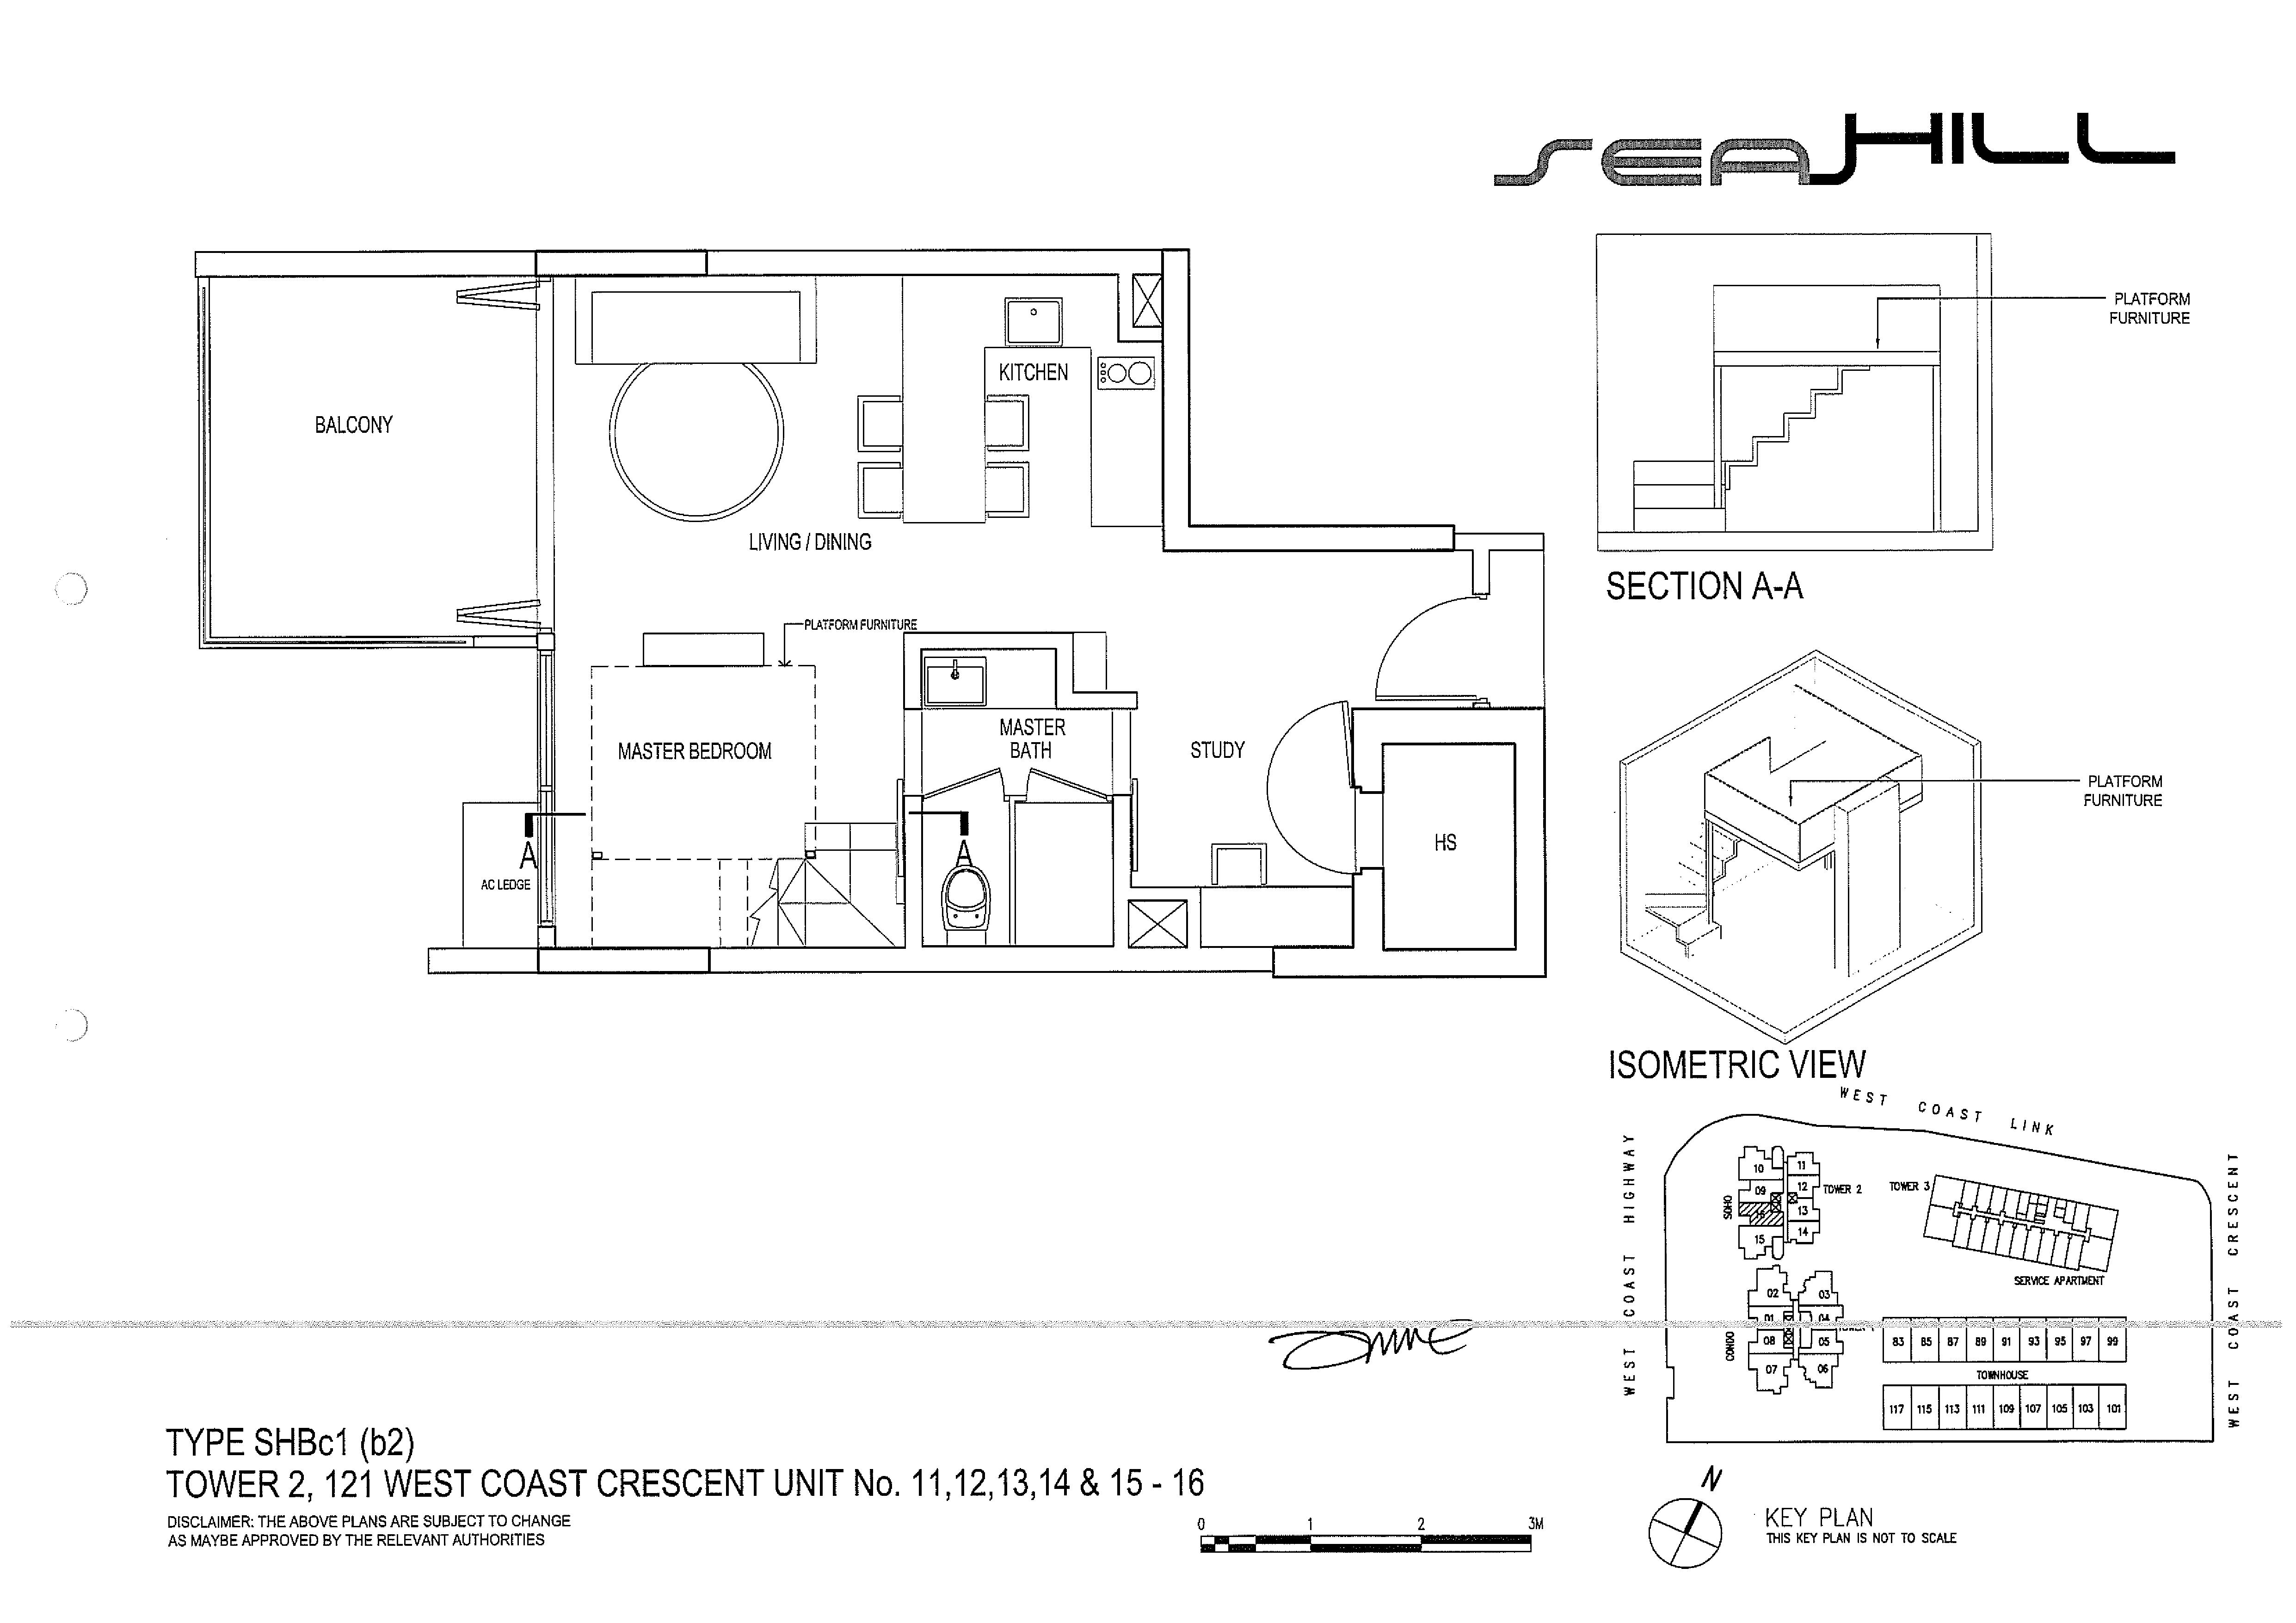 Seahill 1 Bedroom + Study Soho Type SHBc1(b2) Unit 11/12/13/14/15-16 Floor Plans